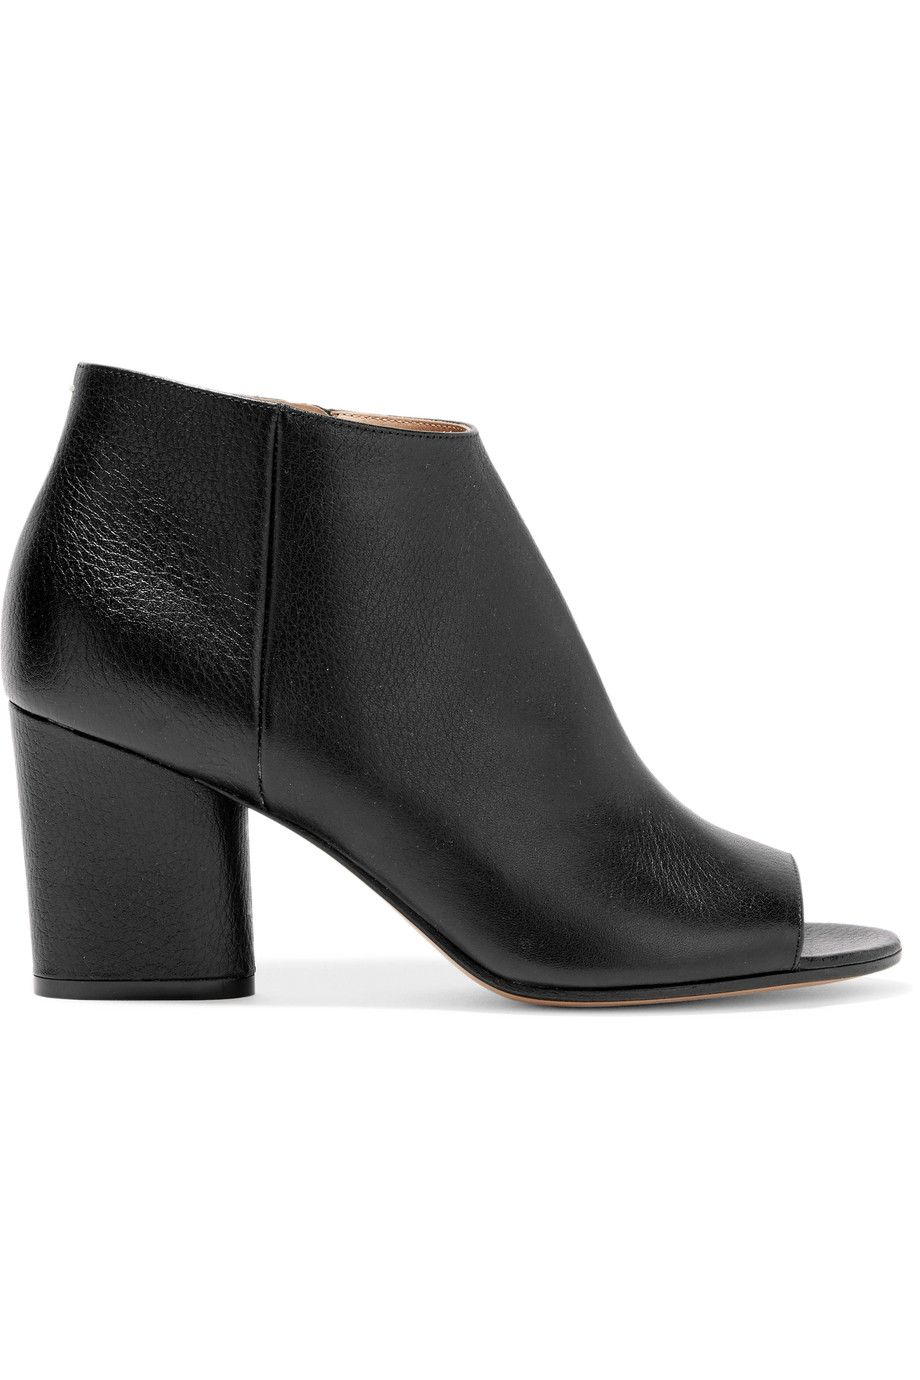 cheap sale websites outlet best seller Maison Margiela Textured Leather Ankle Boots clearance best sale discount best store to get cheap best store to get dXwcADL5